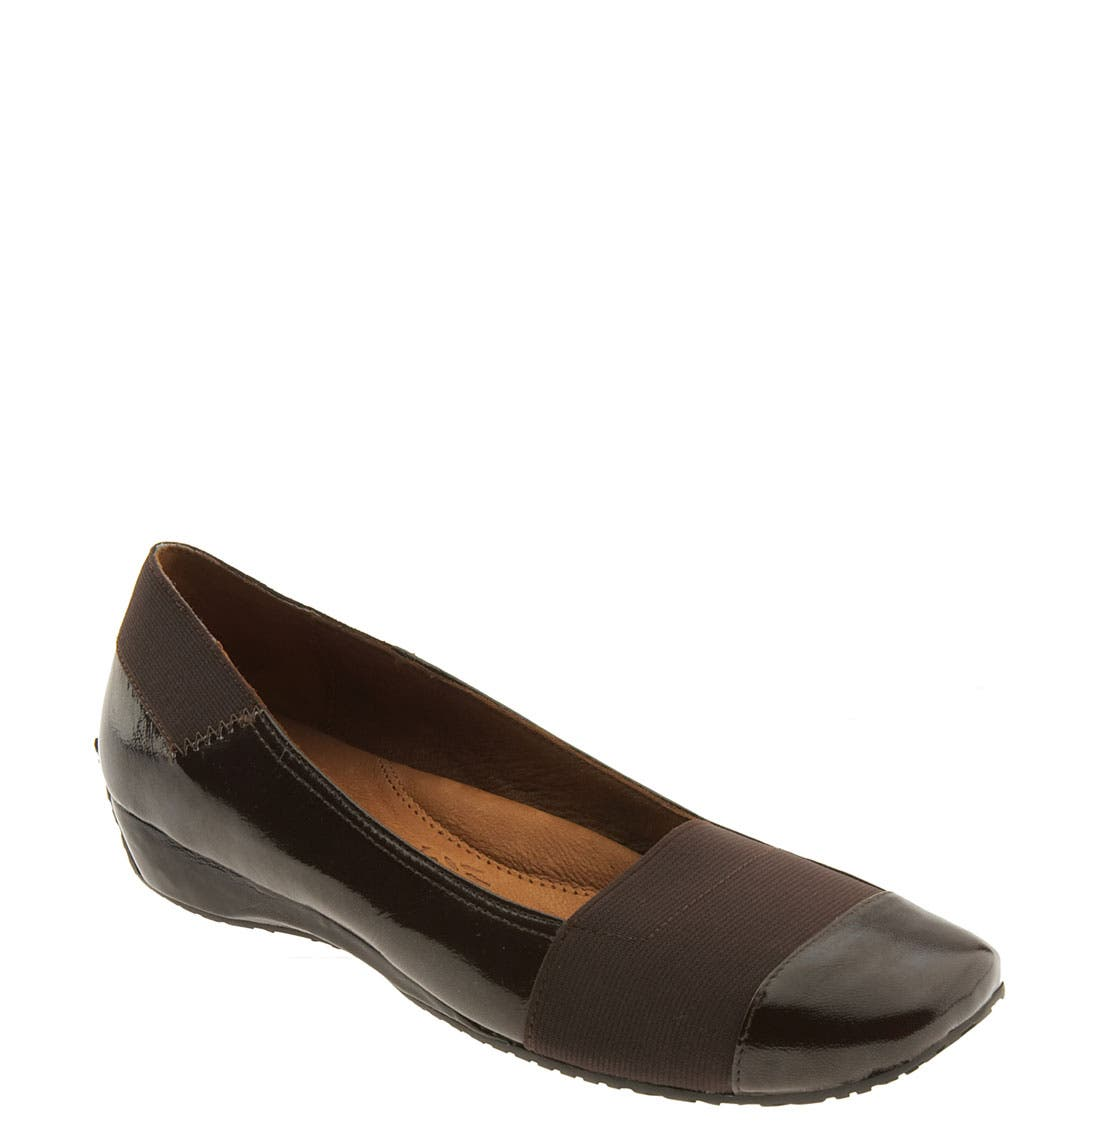 Alternate Image 1 Selected - Gentle Souls 'Iso Kik' Slip-On Wedge